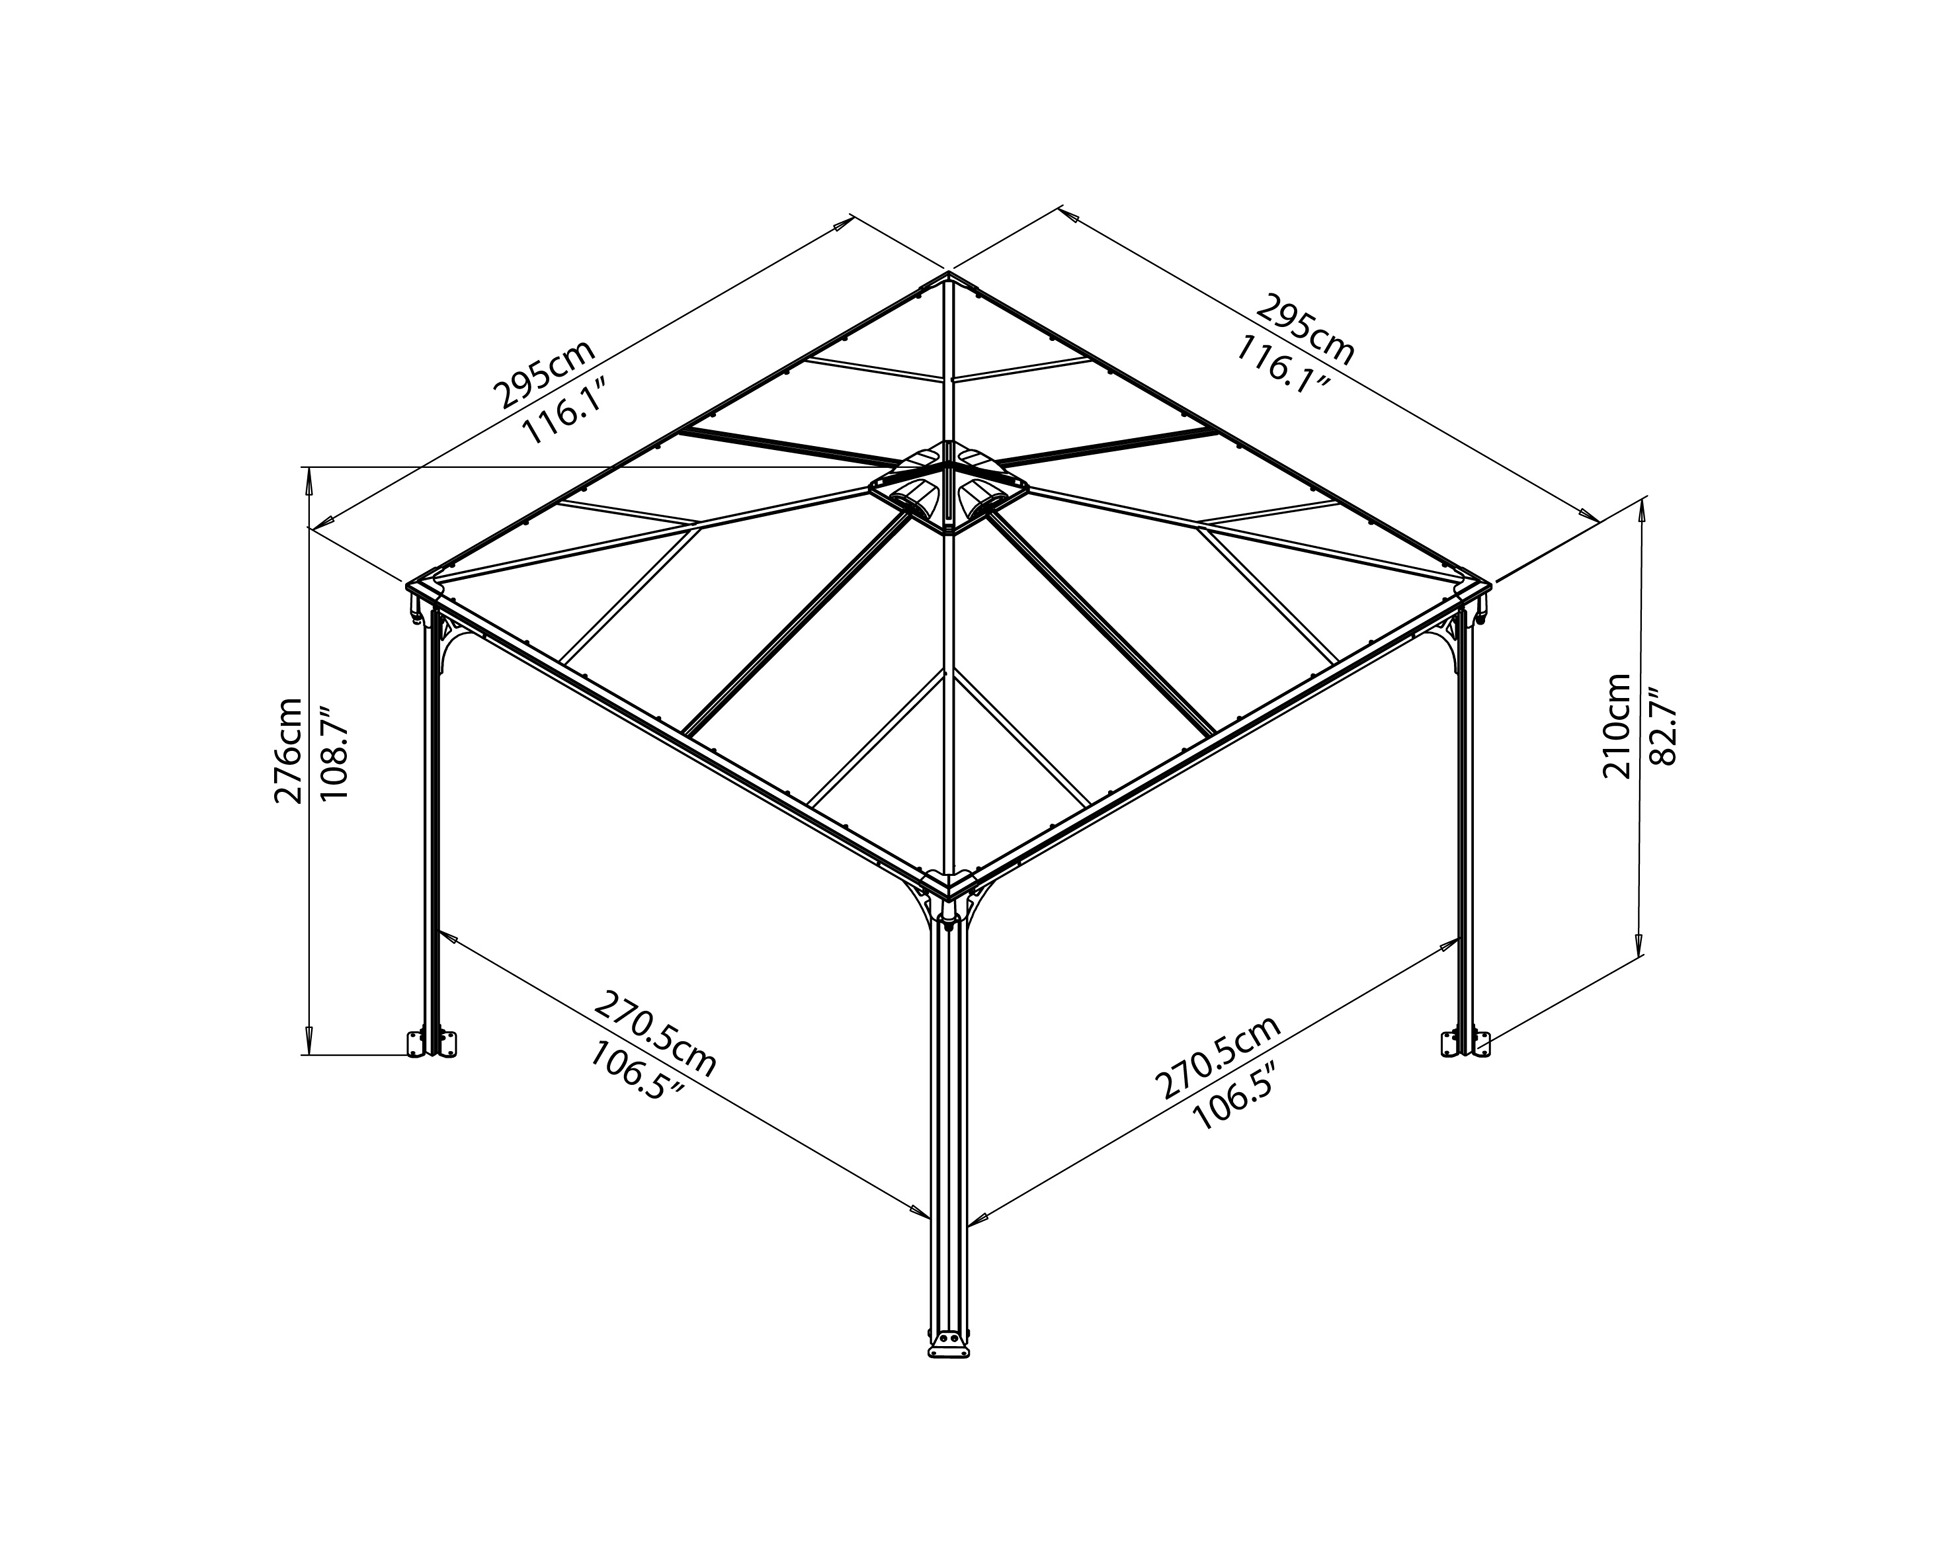 Our Review of the Best 7 Hardtop Gazebos - 2019